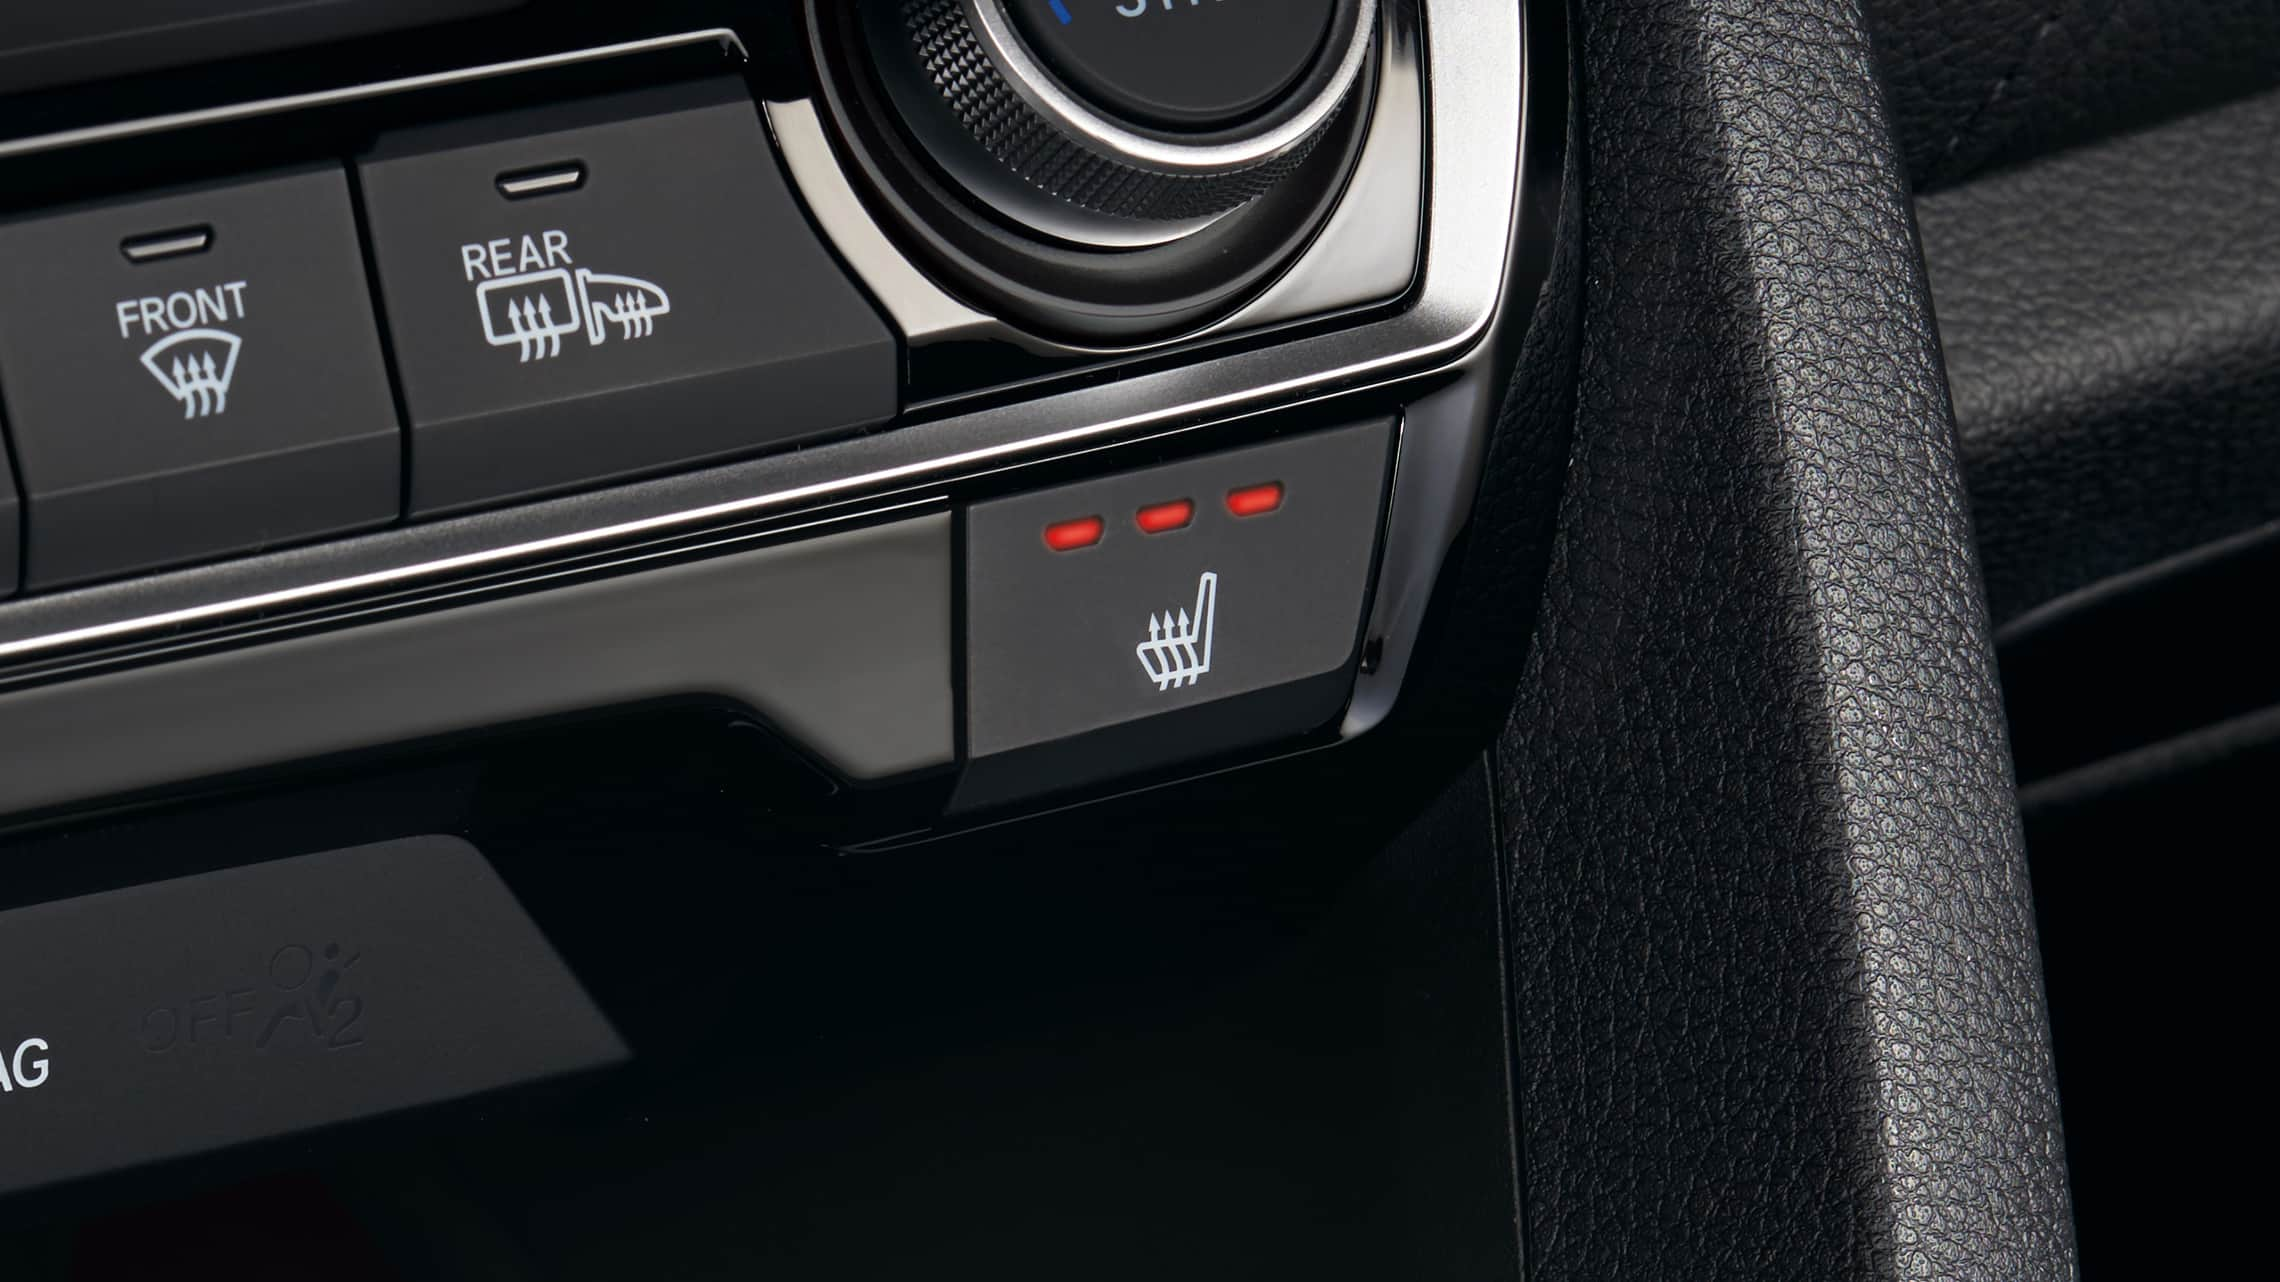 Detail of heated front-seat buttons in the 2021 Honda Civic Touring Sedan.